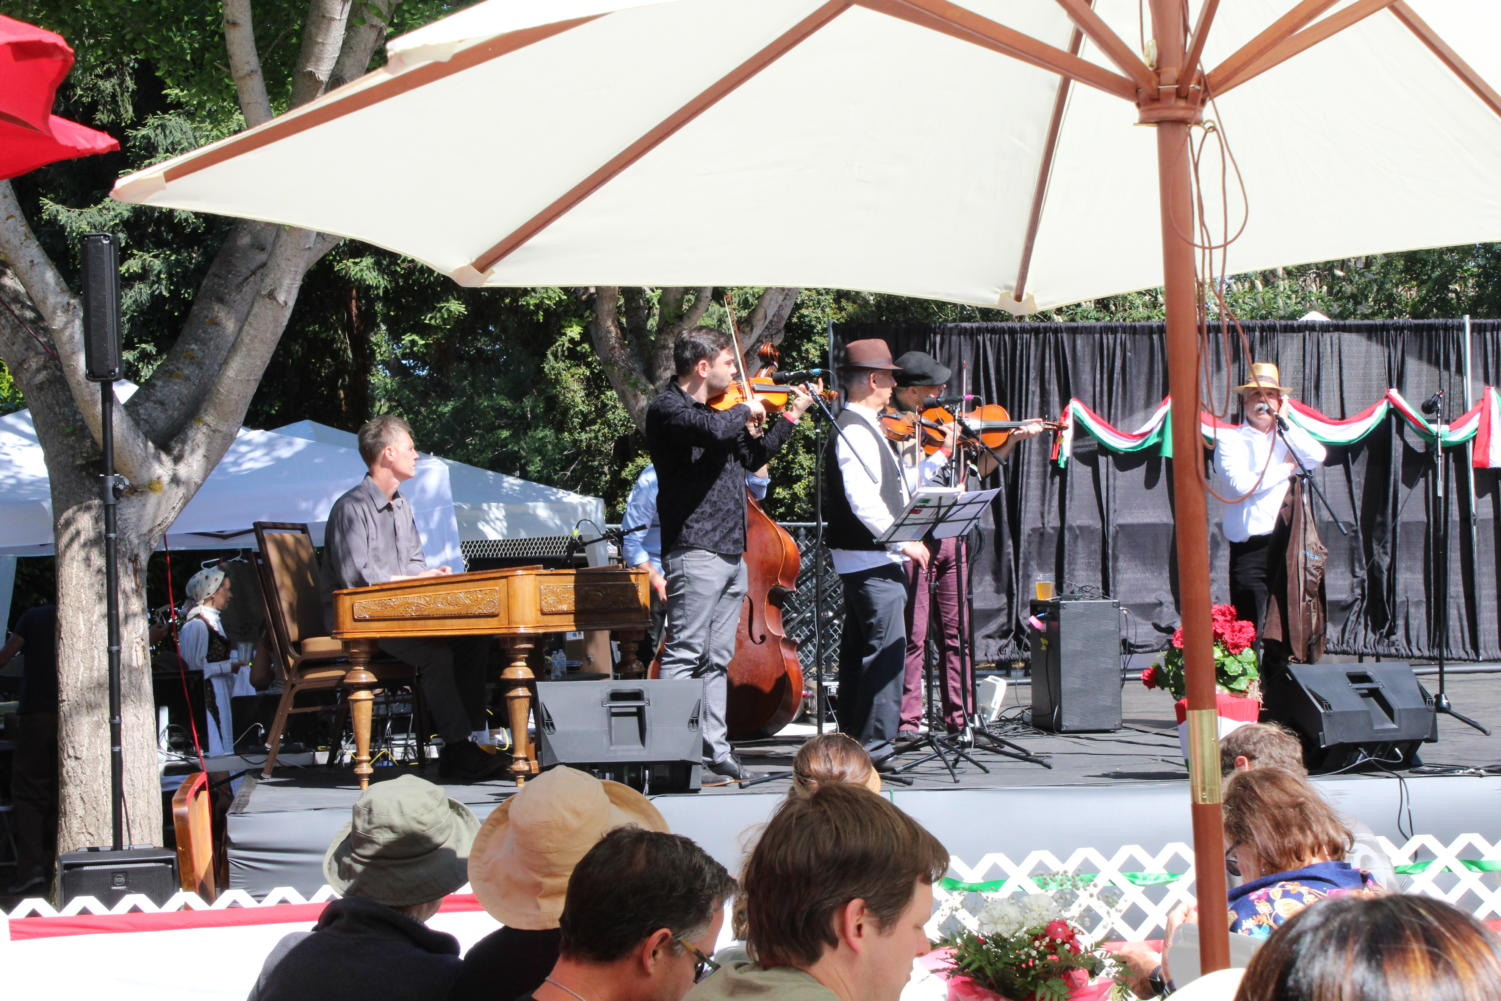 Bands play Hungarian music from the stage to liven up the event.